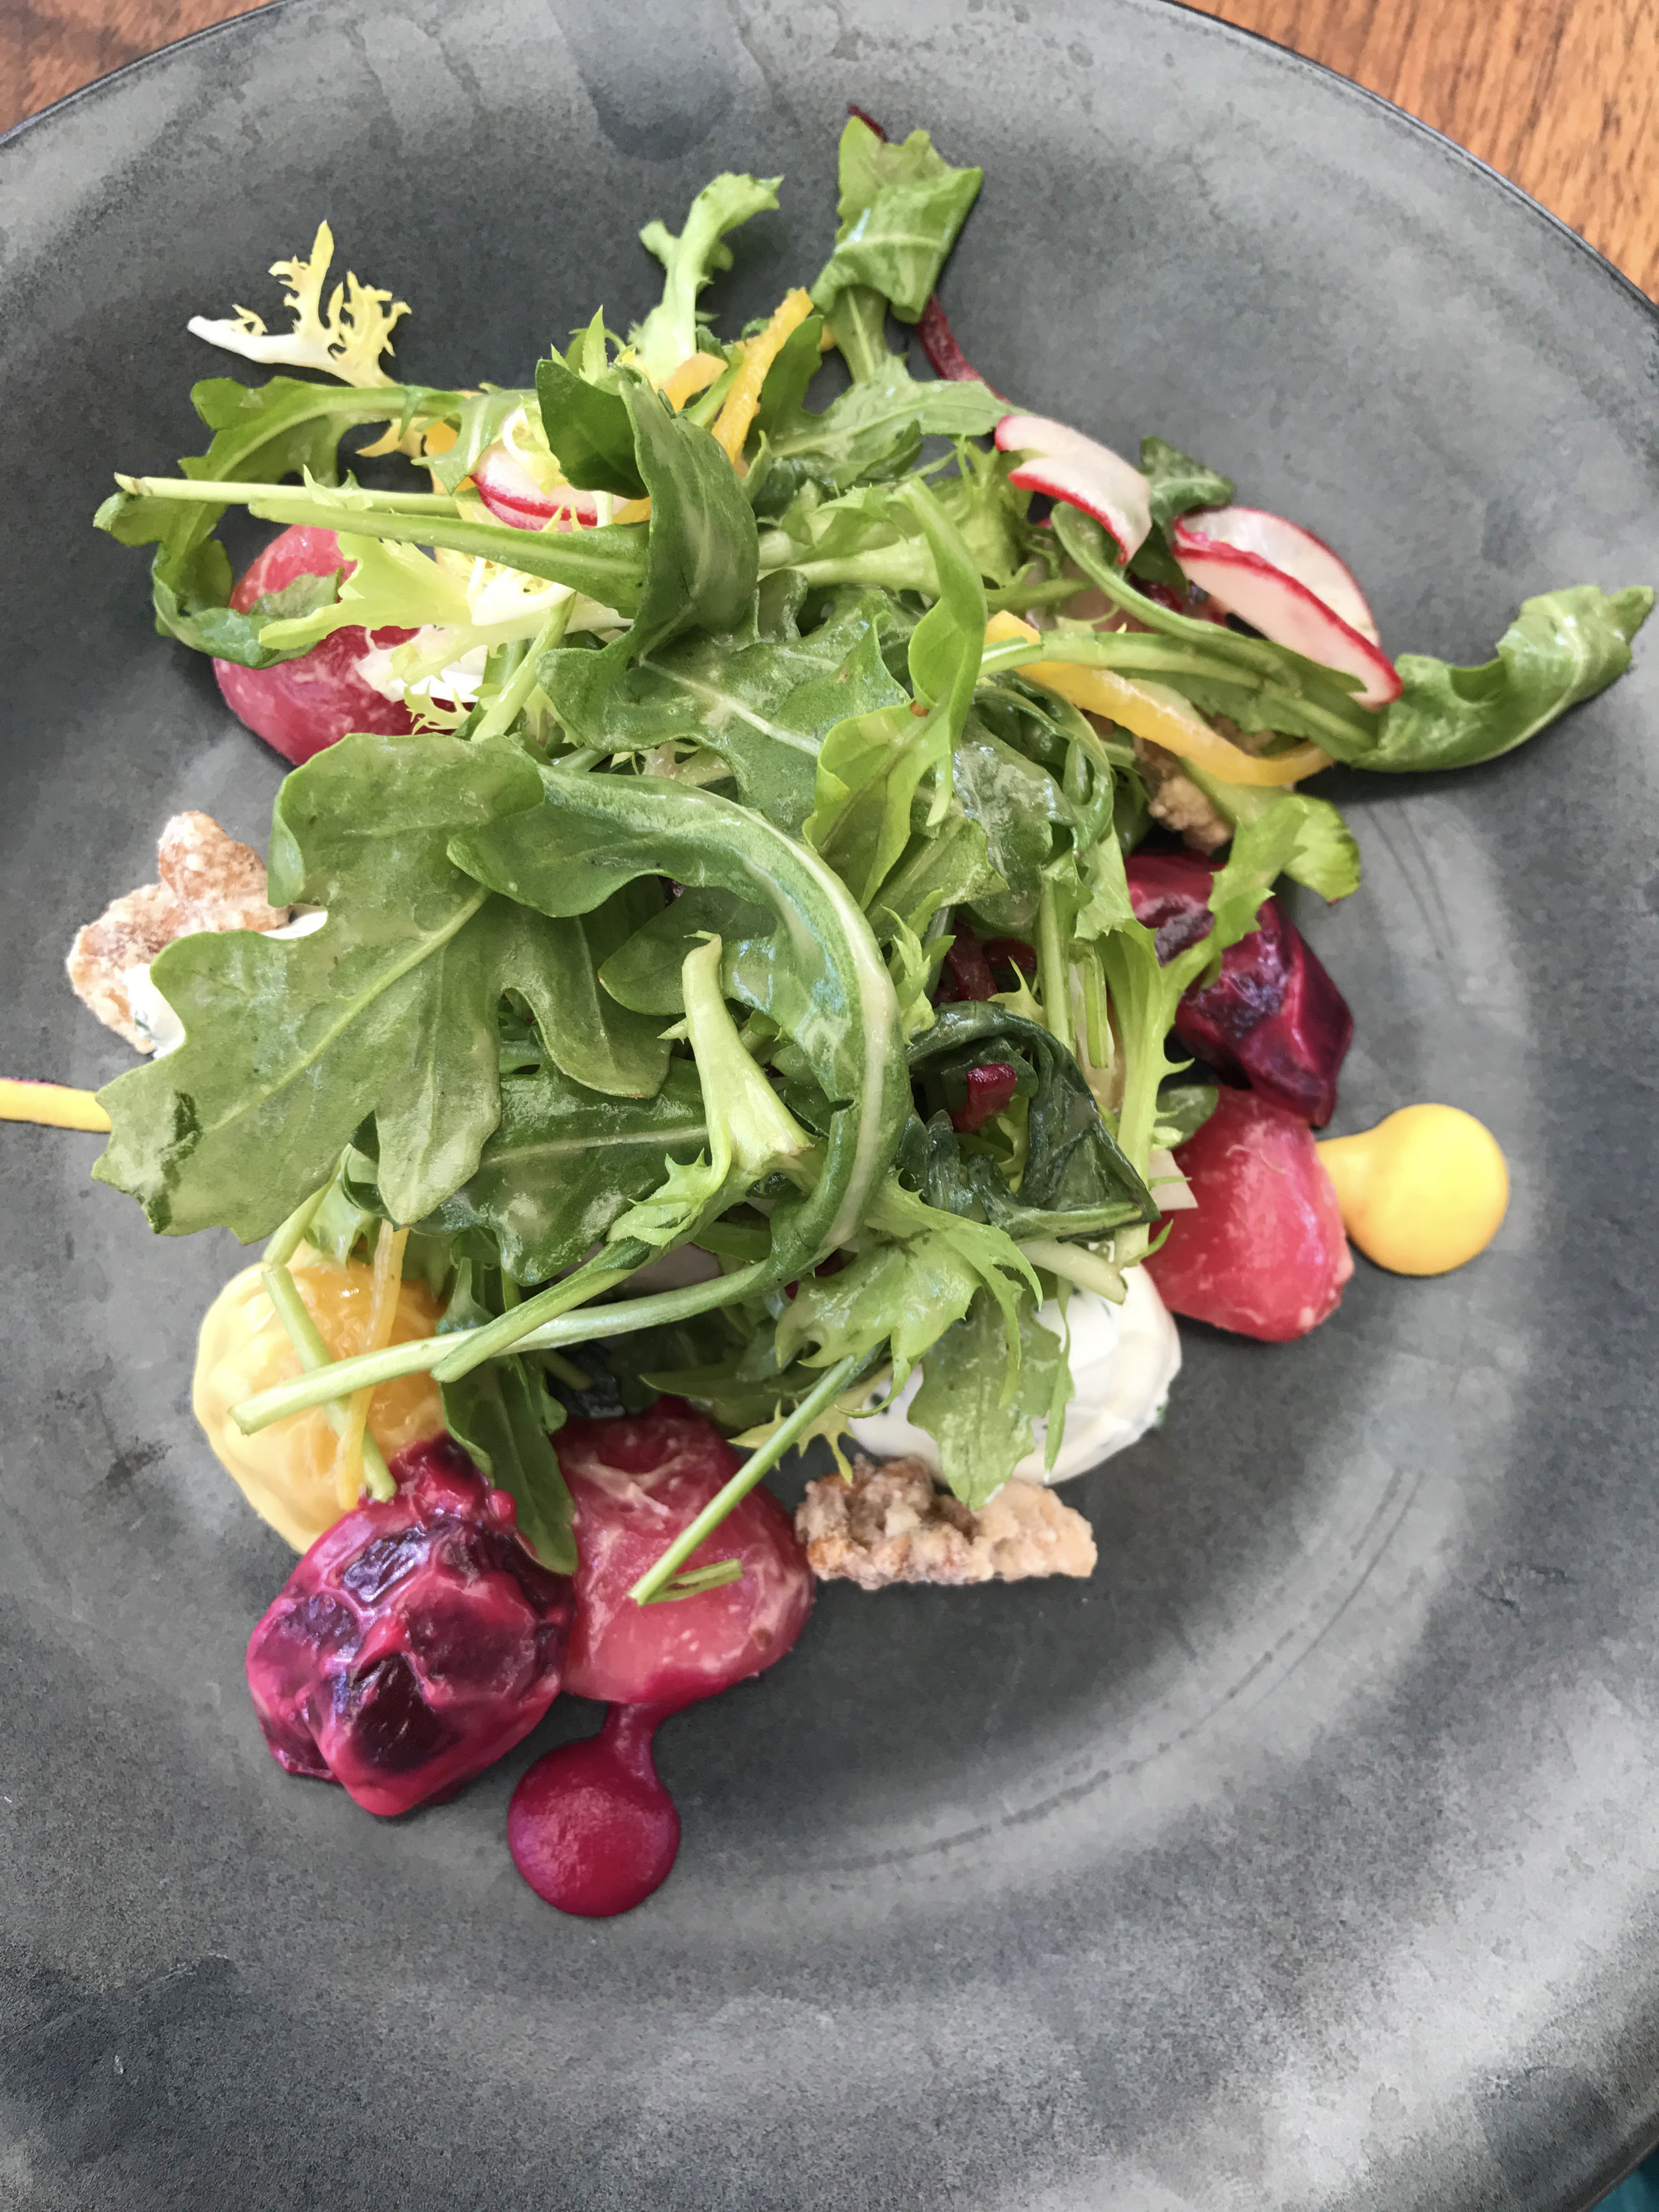 Roasted tri-colored beet salad with goat cheese and candied walnuts